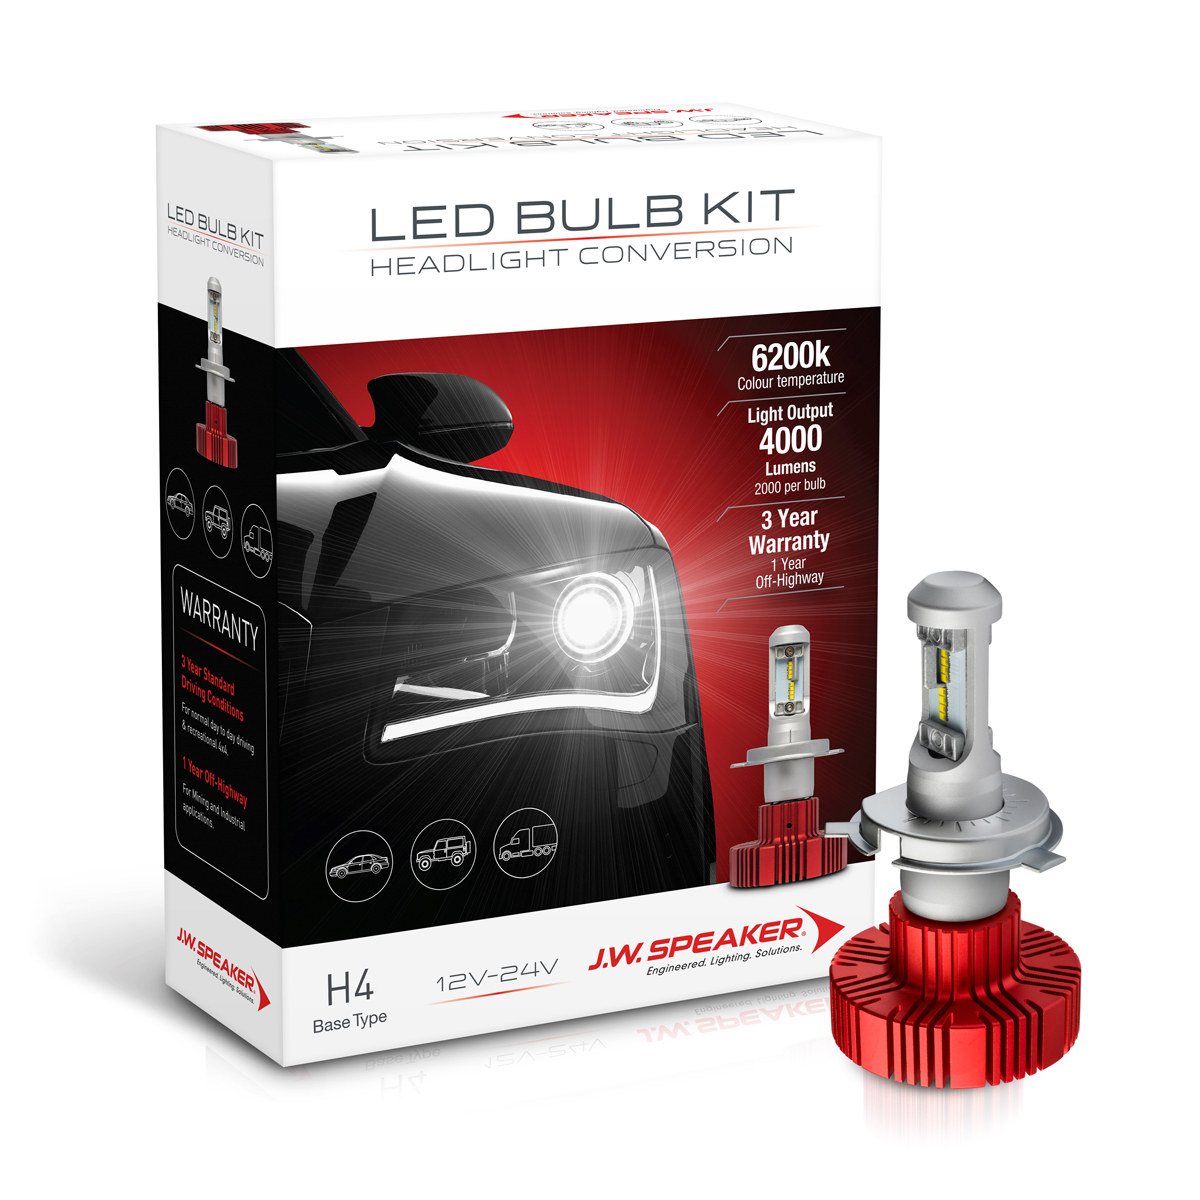 LED Headlight Conversion Kit – Model 4000